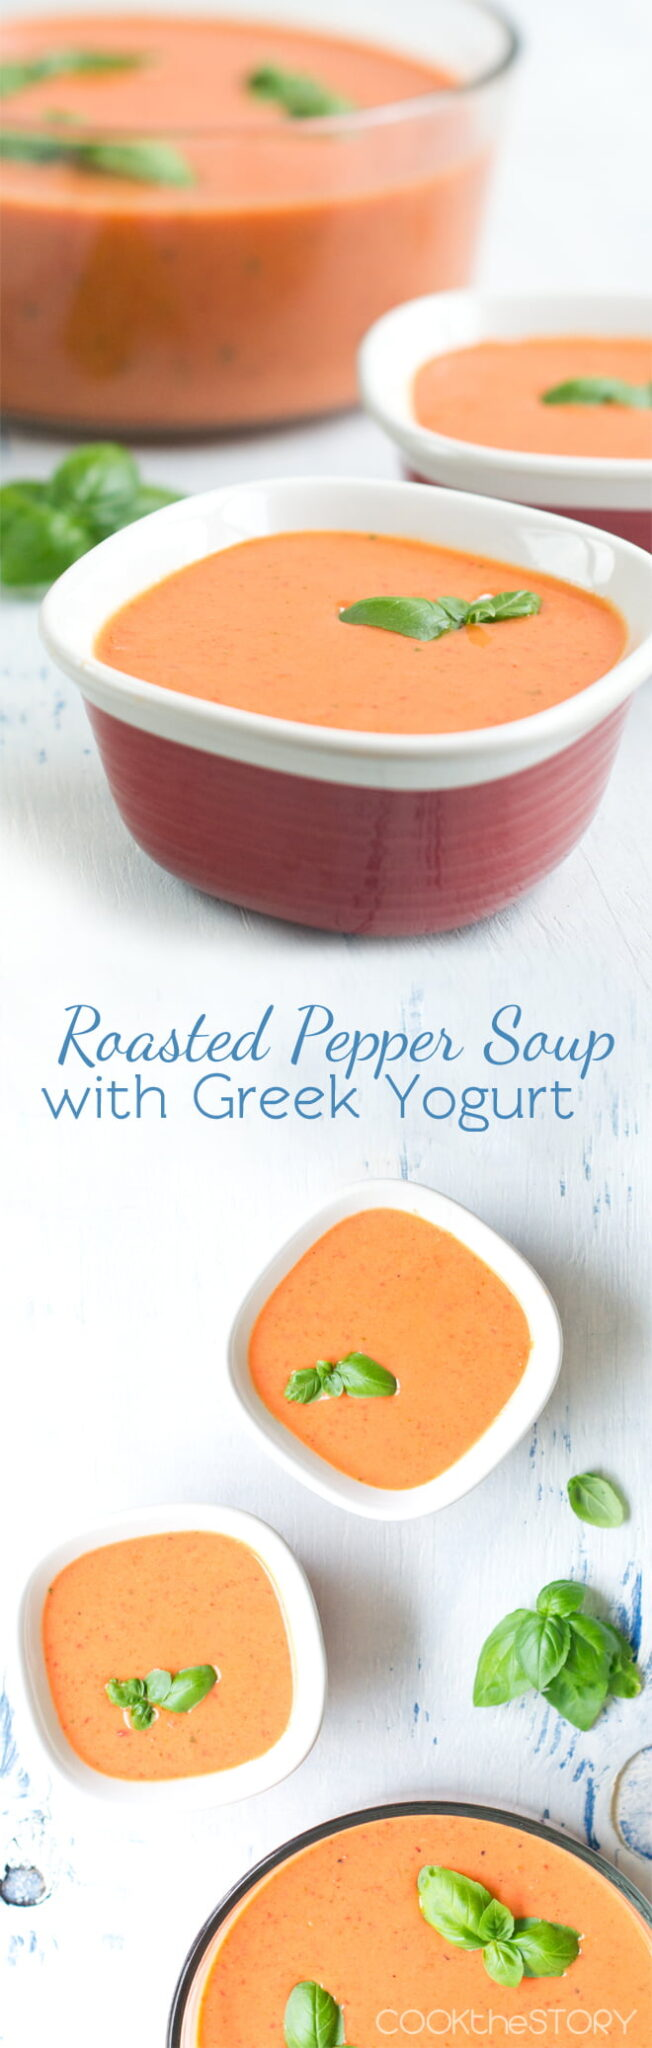 Cold Roasted Pepper Soup with Basil and Greek Yogurt by @cookthestory